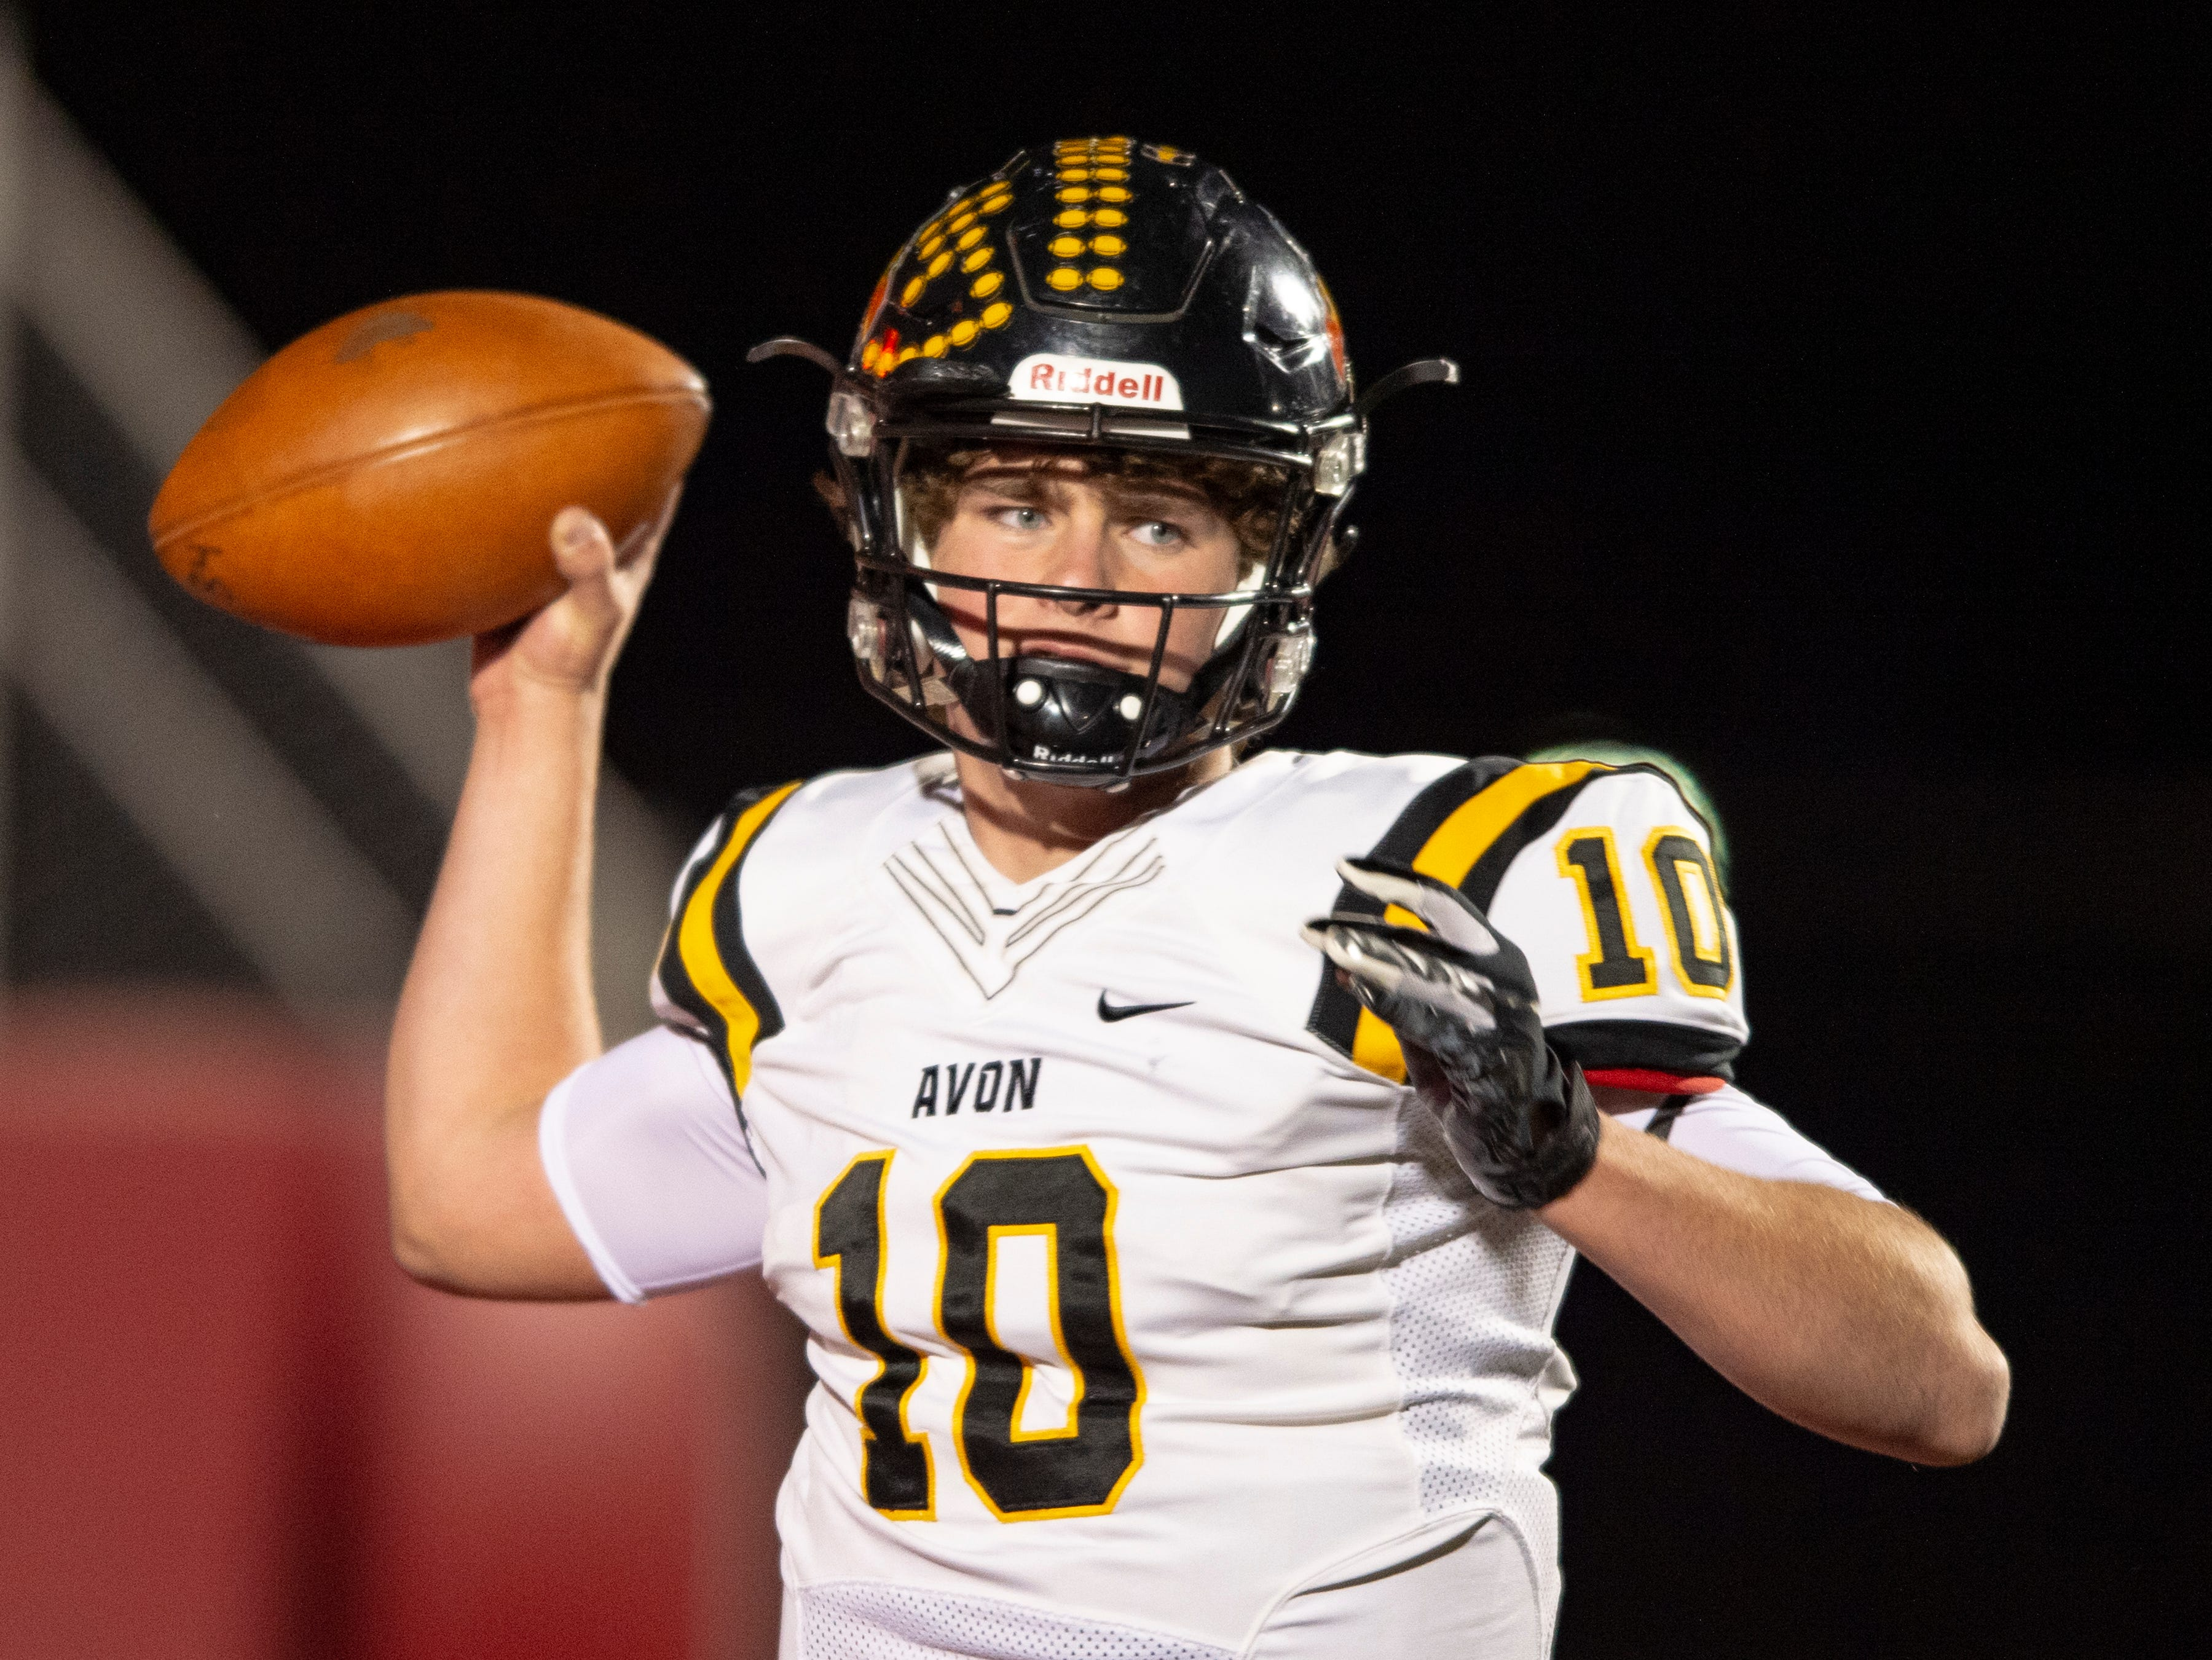 Avon High School sophomore Henry Hesson (10) drops back to throw out of the backfield during the first half of action. Center Grove High School hosted Avon High School in an IHSAA Class 6A Regional Championship varsity football game, Friday, Nov. 9, 2018.